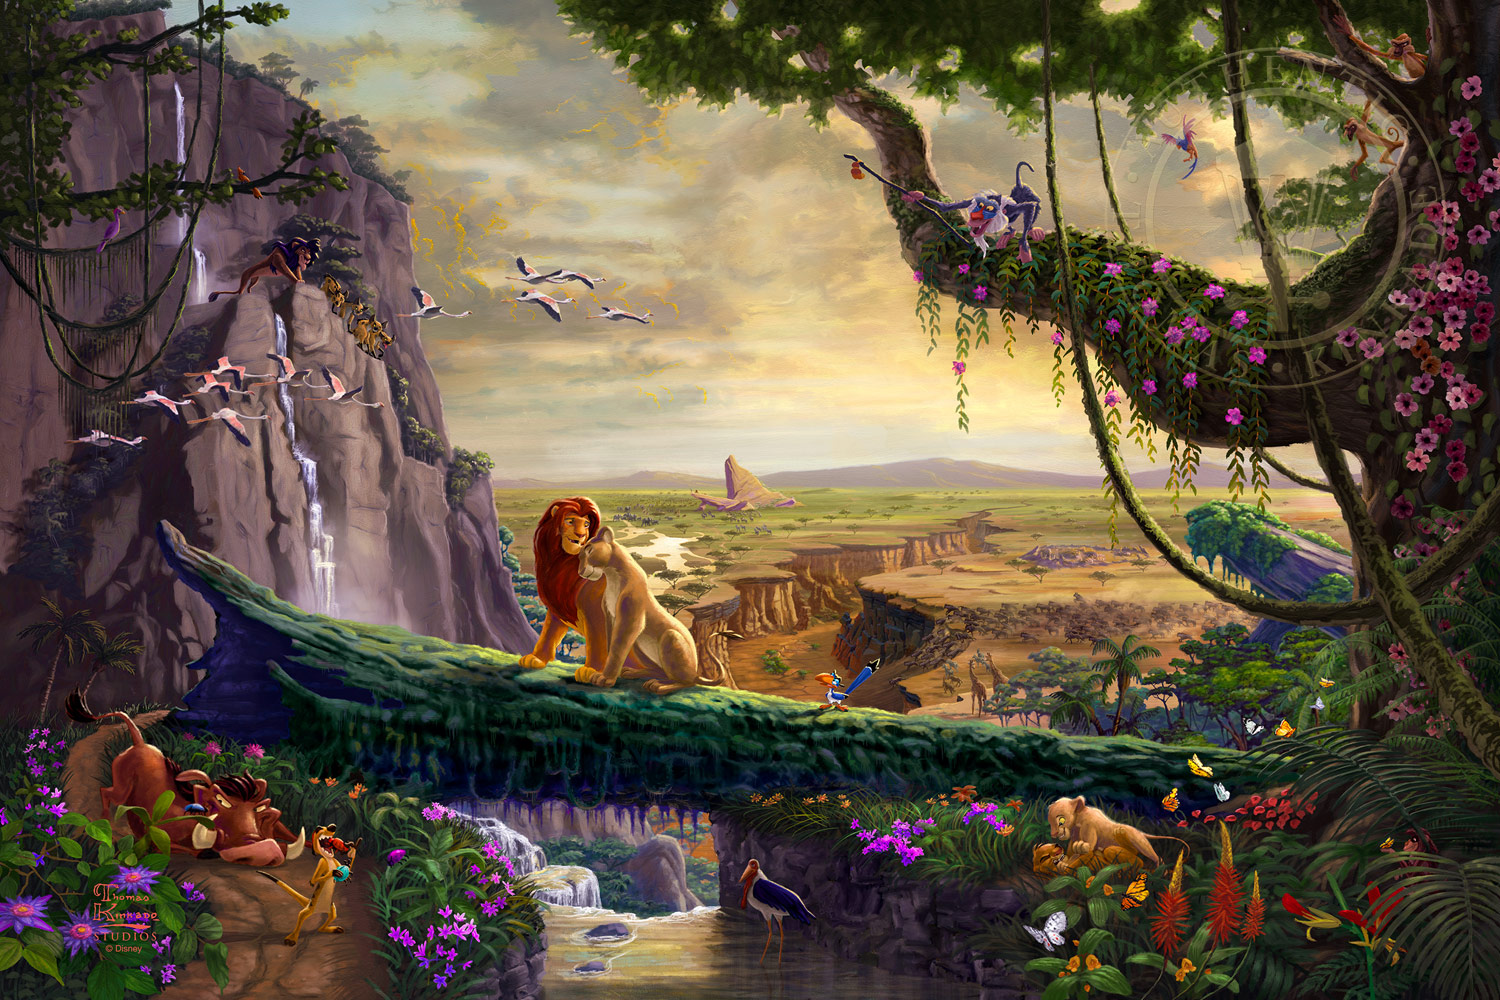 Disney Lion King Return To Pride Rock Thomas Kinkade Studios